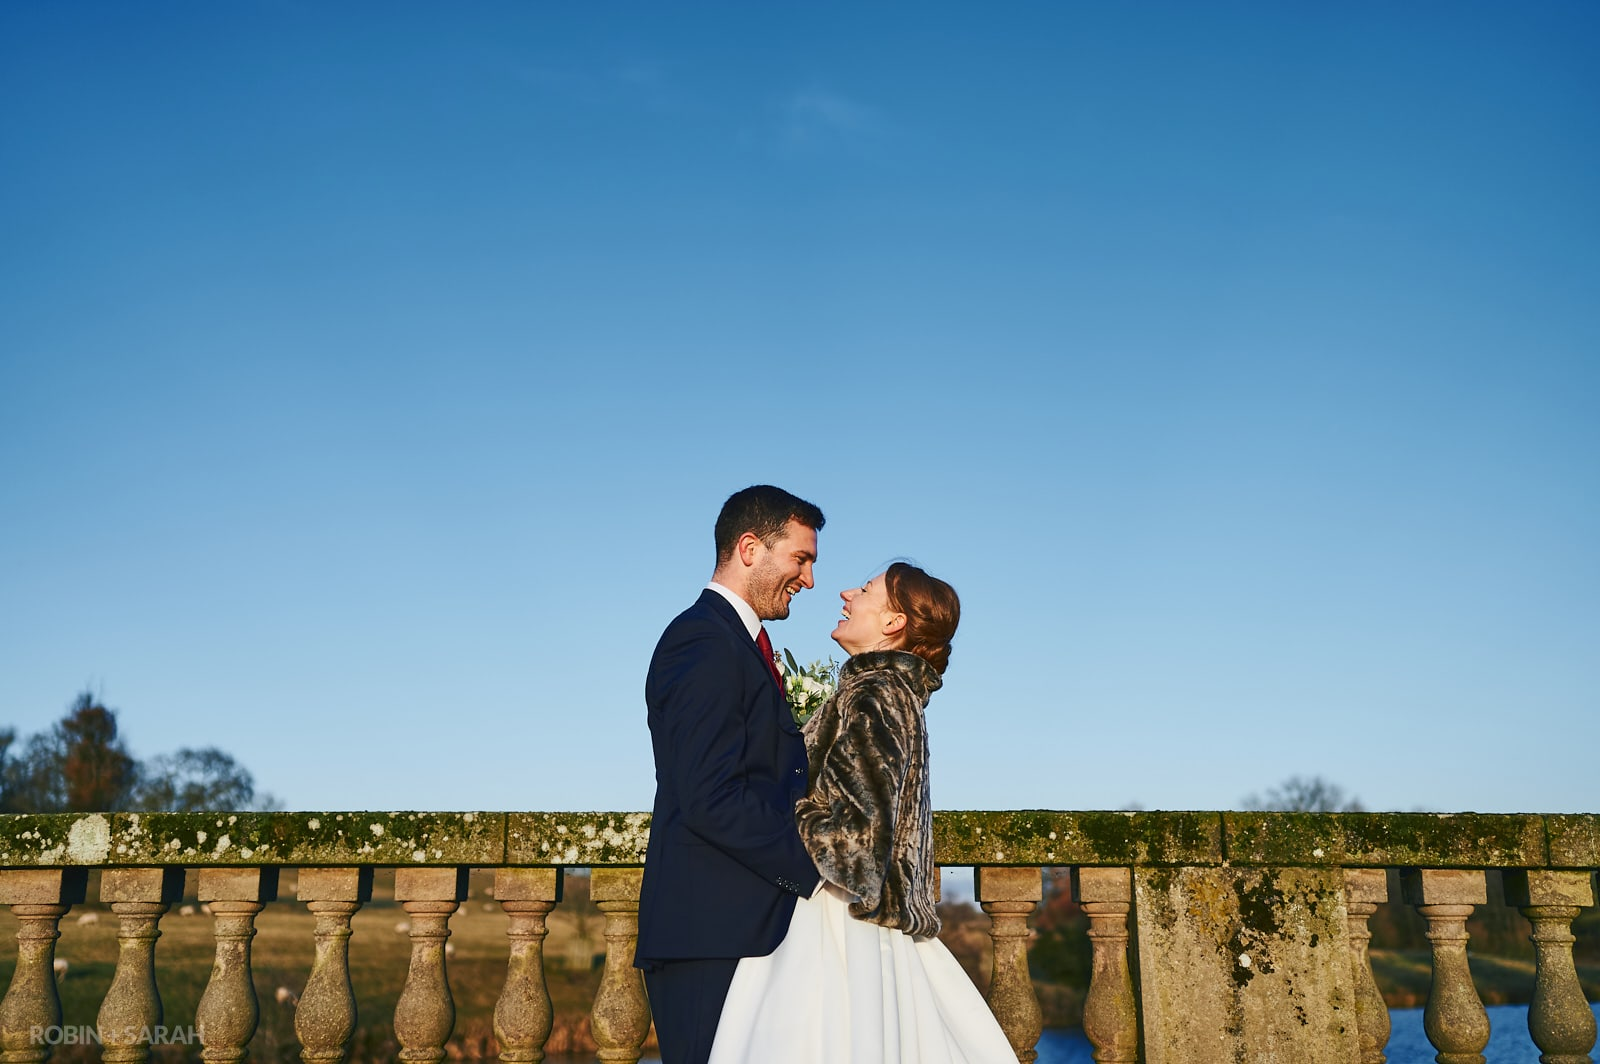 Bride and groom laughing together on cold winter day with clear blue sky